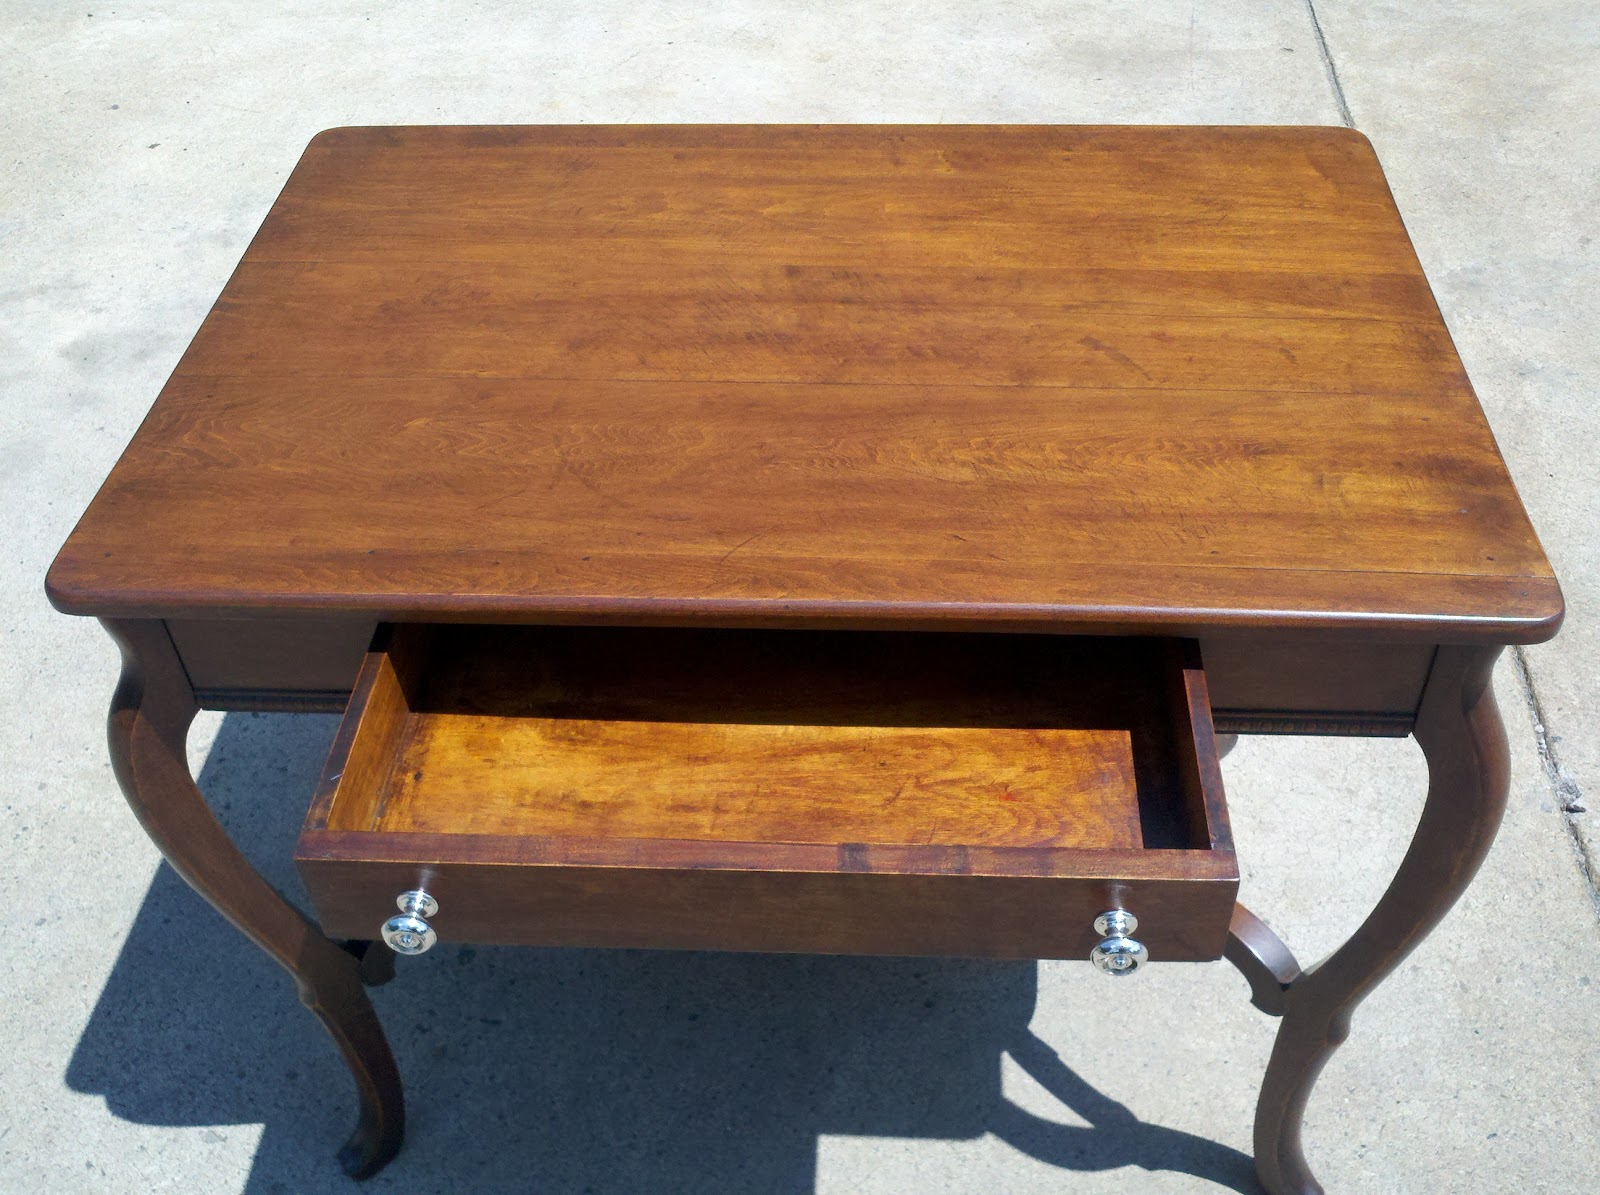 woods used for furniture. How To Identify Wood Used Make Antique Furniture Woods For C